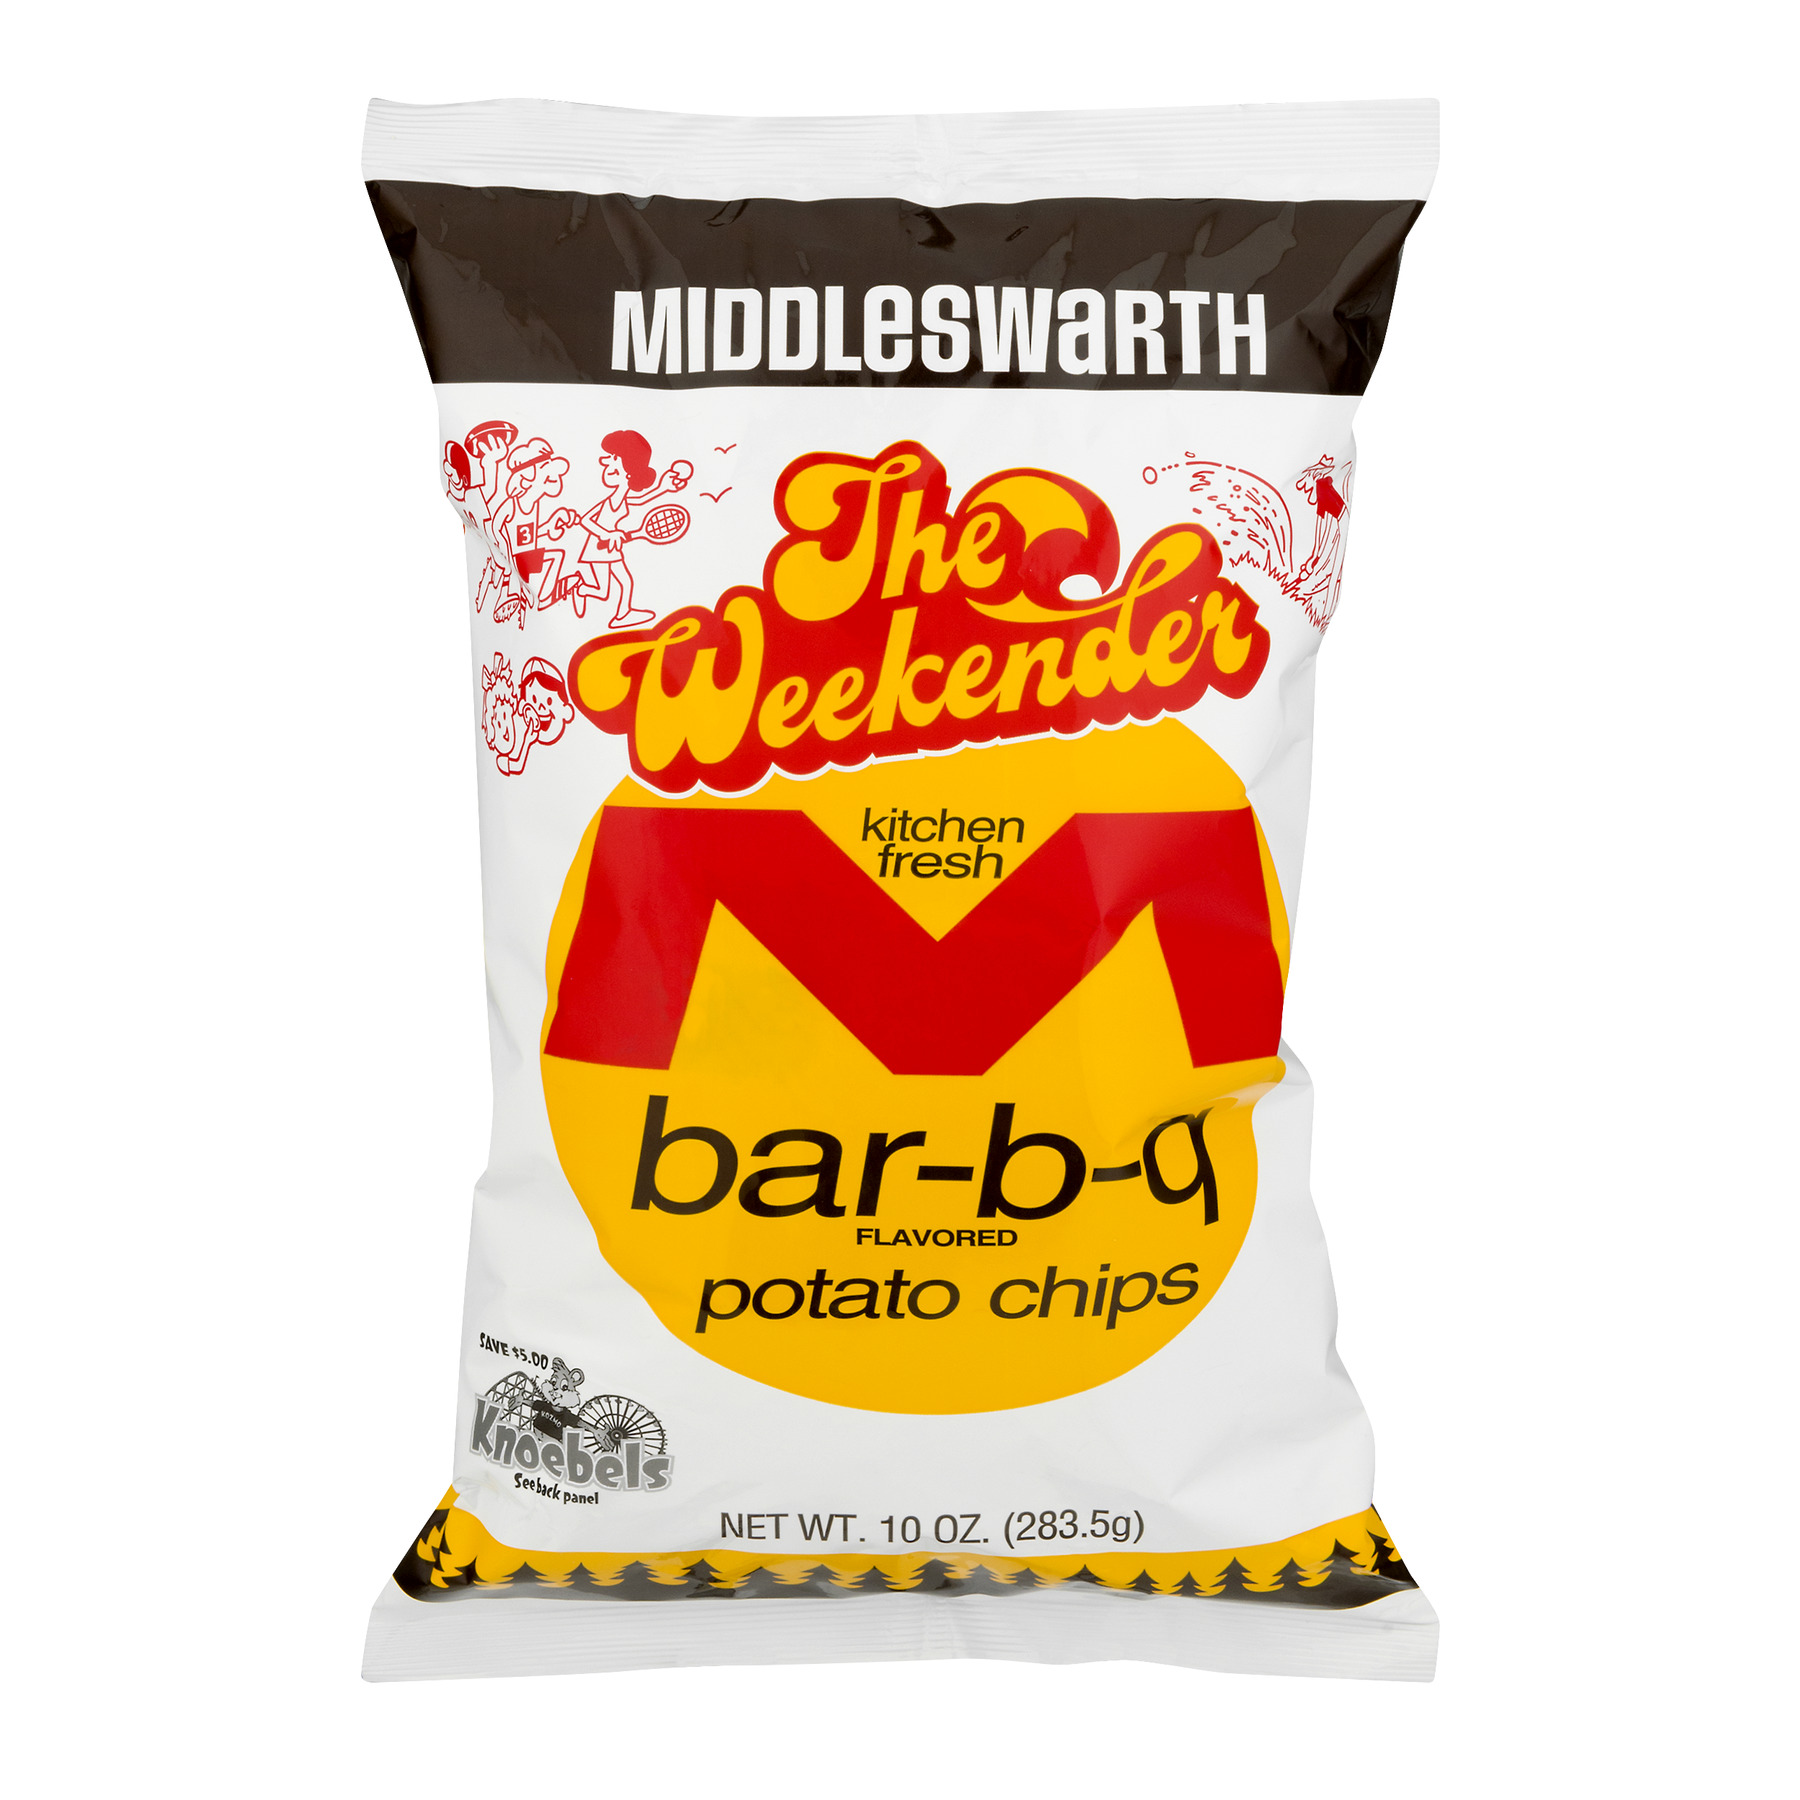 Middleswarth The Weekender Bar-B-Q Potato Chips, 10 Oz.